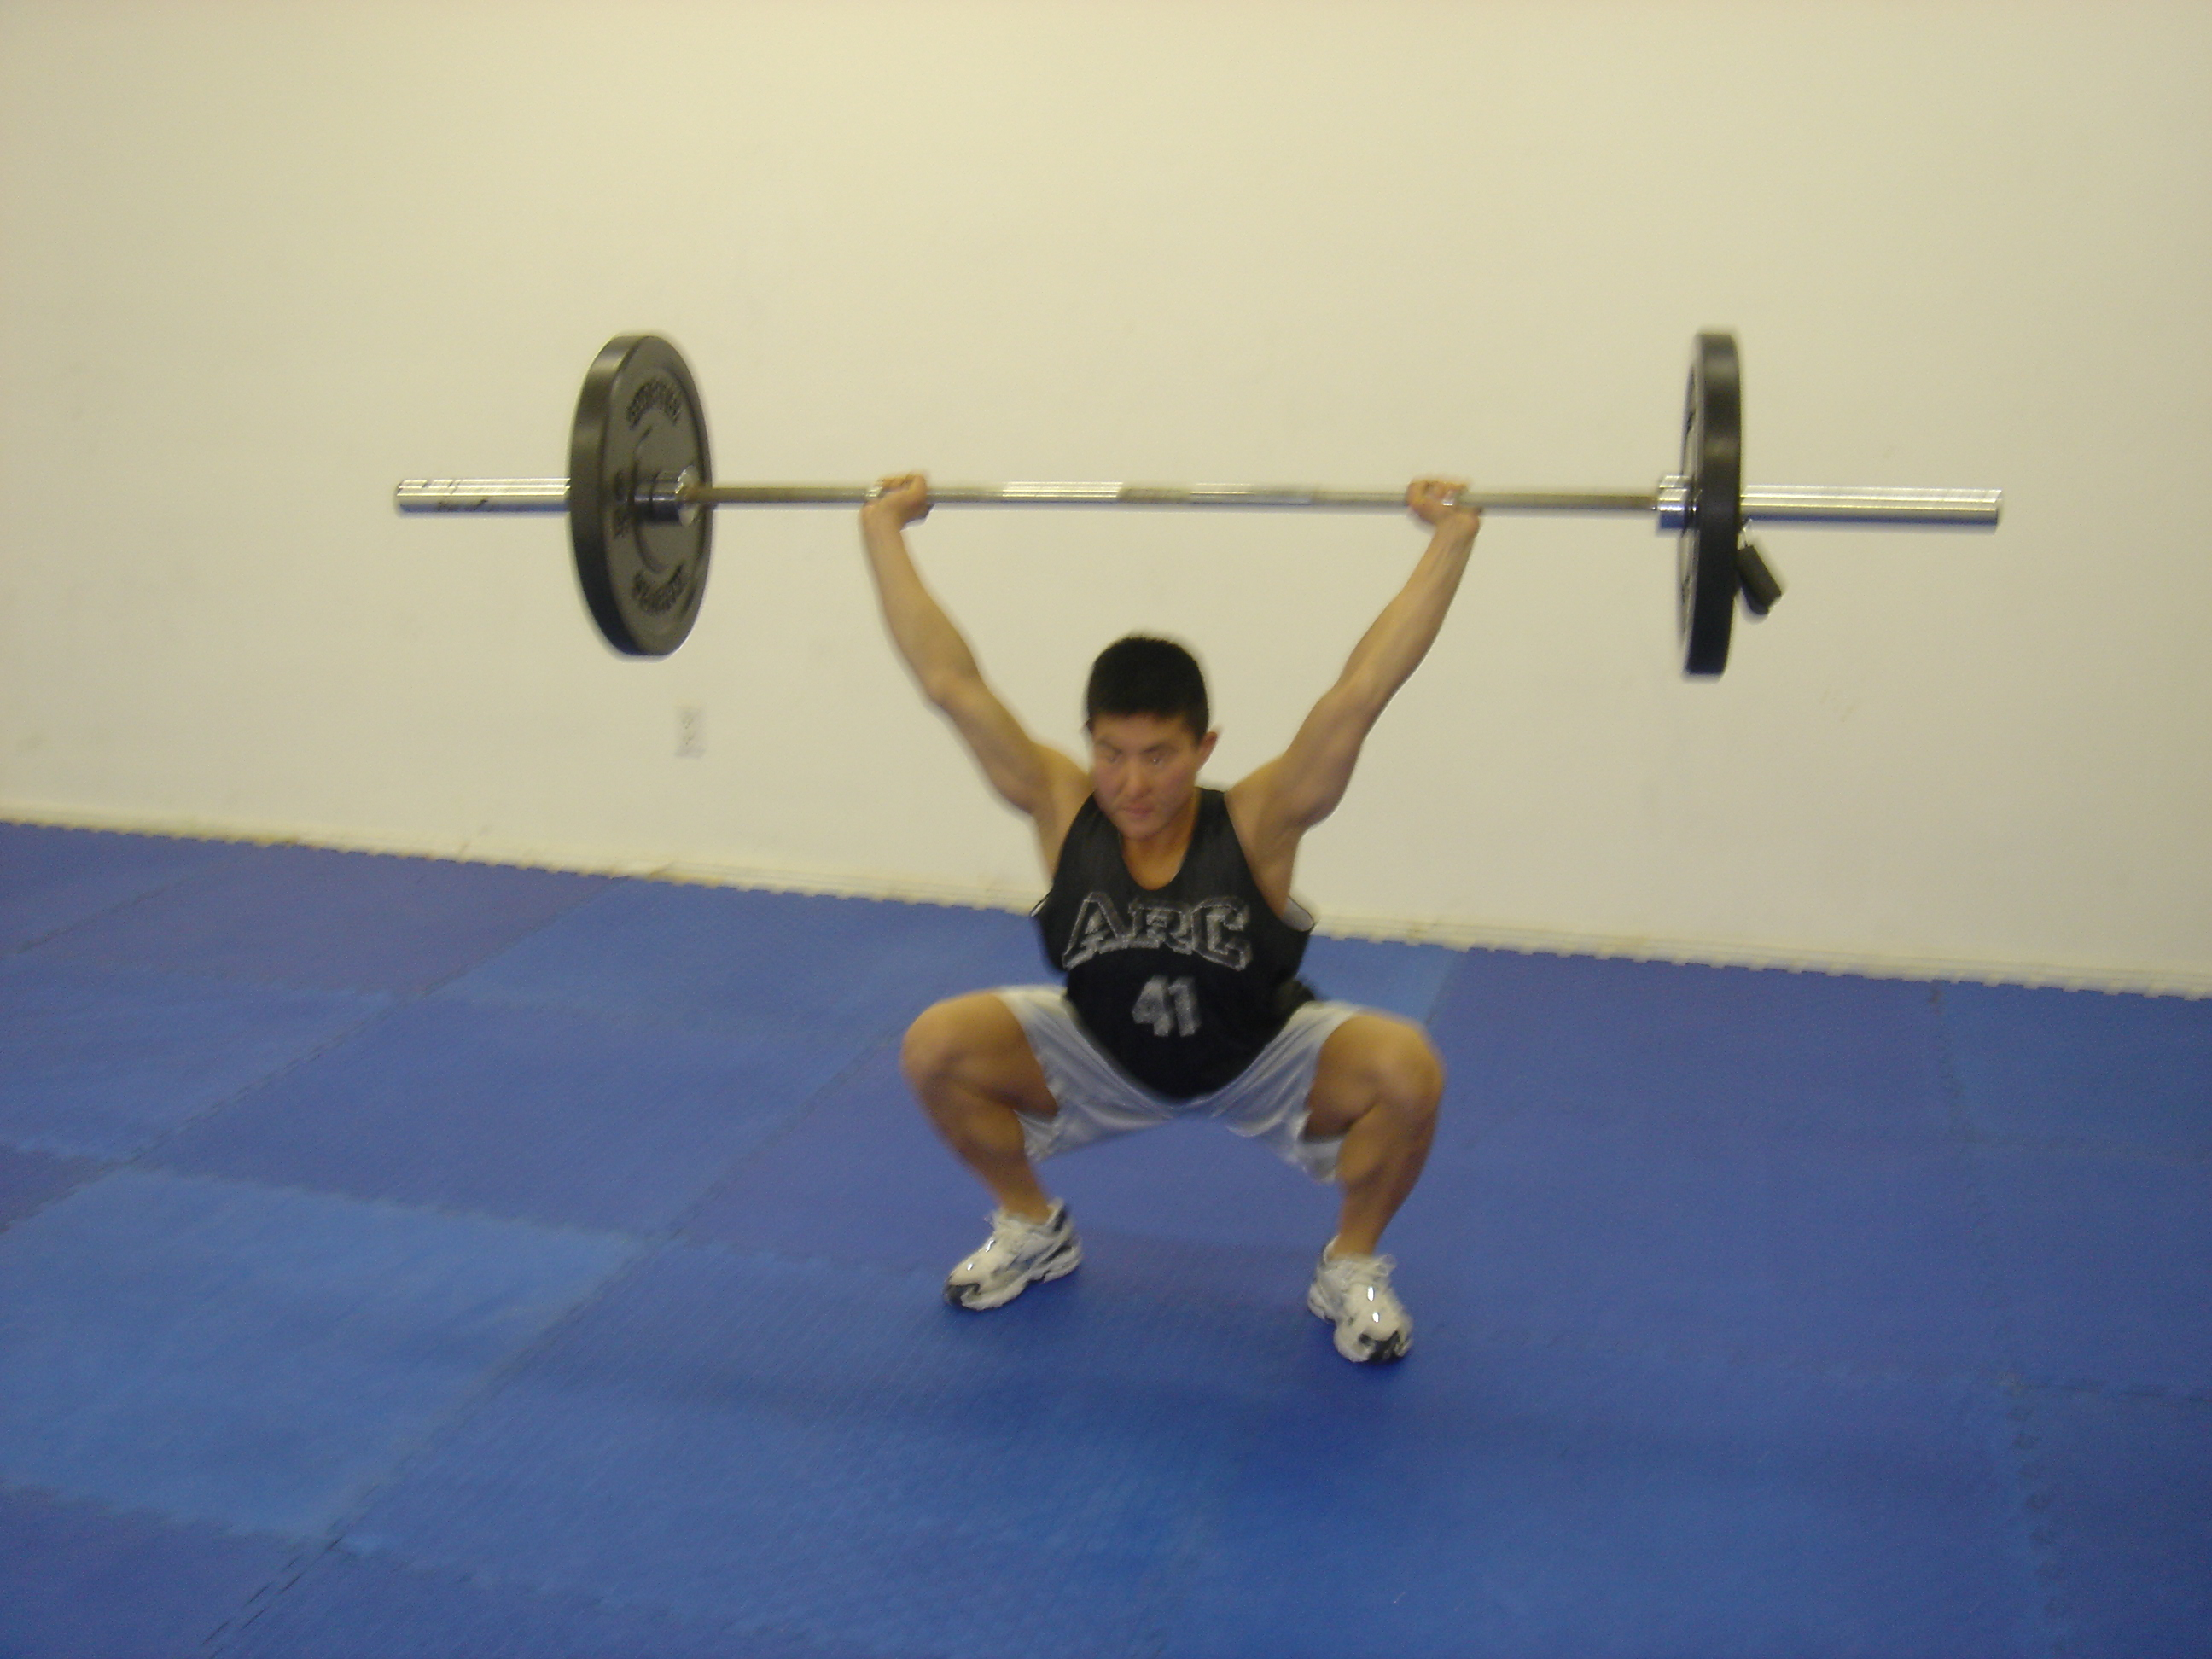 ...and the first overhead squat...